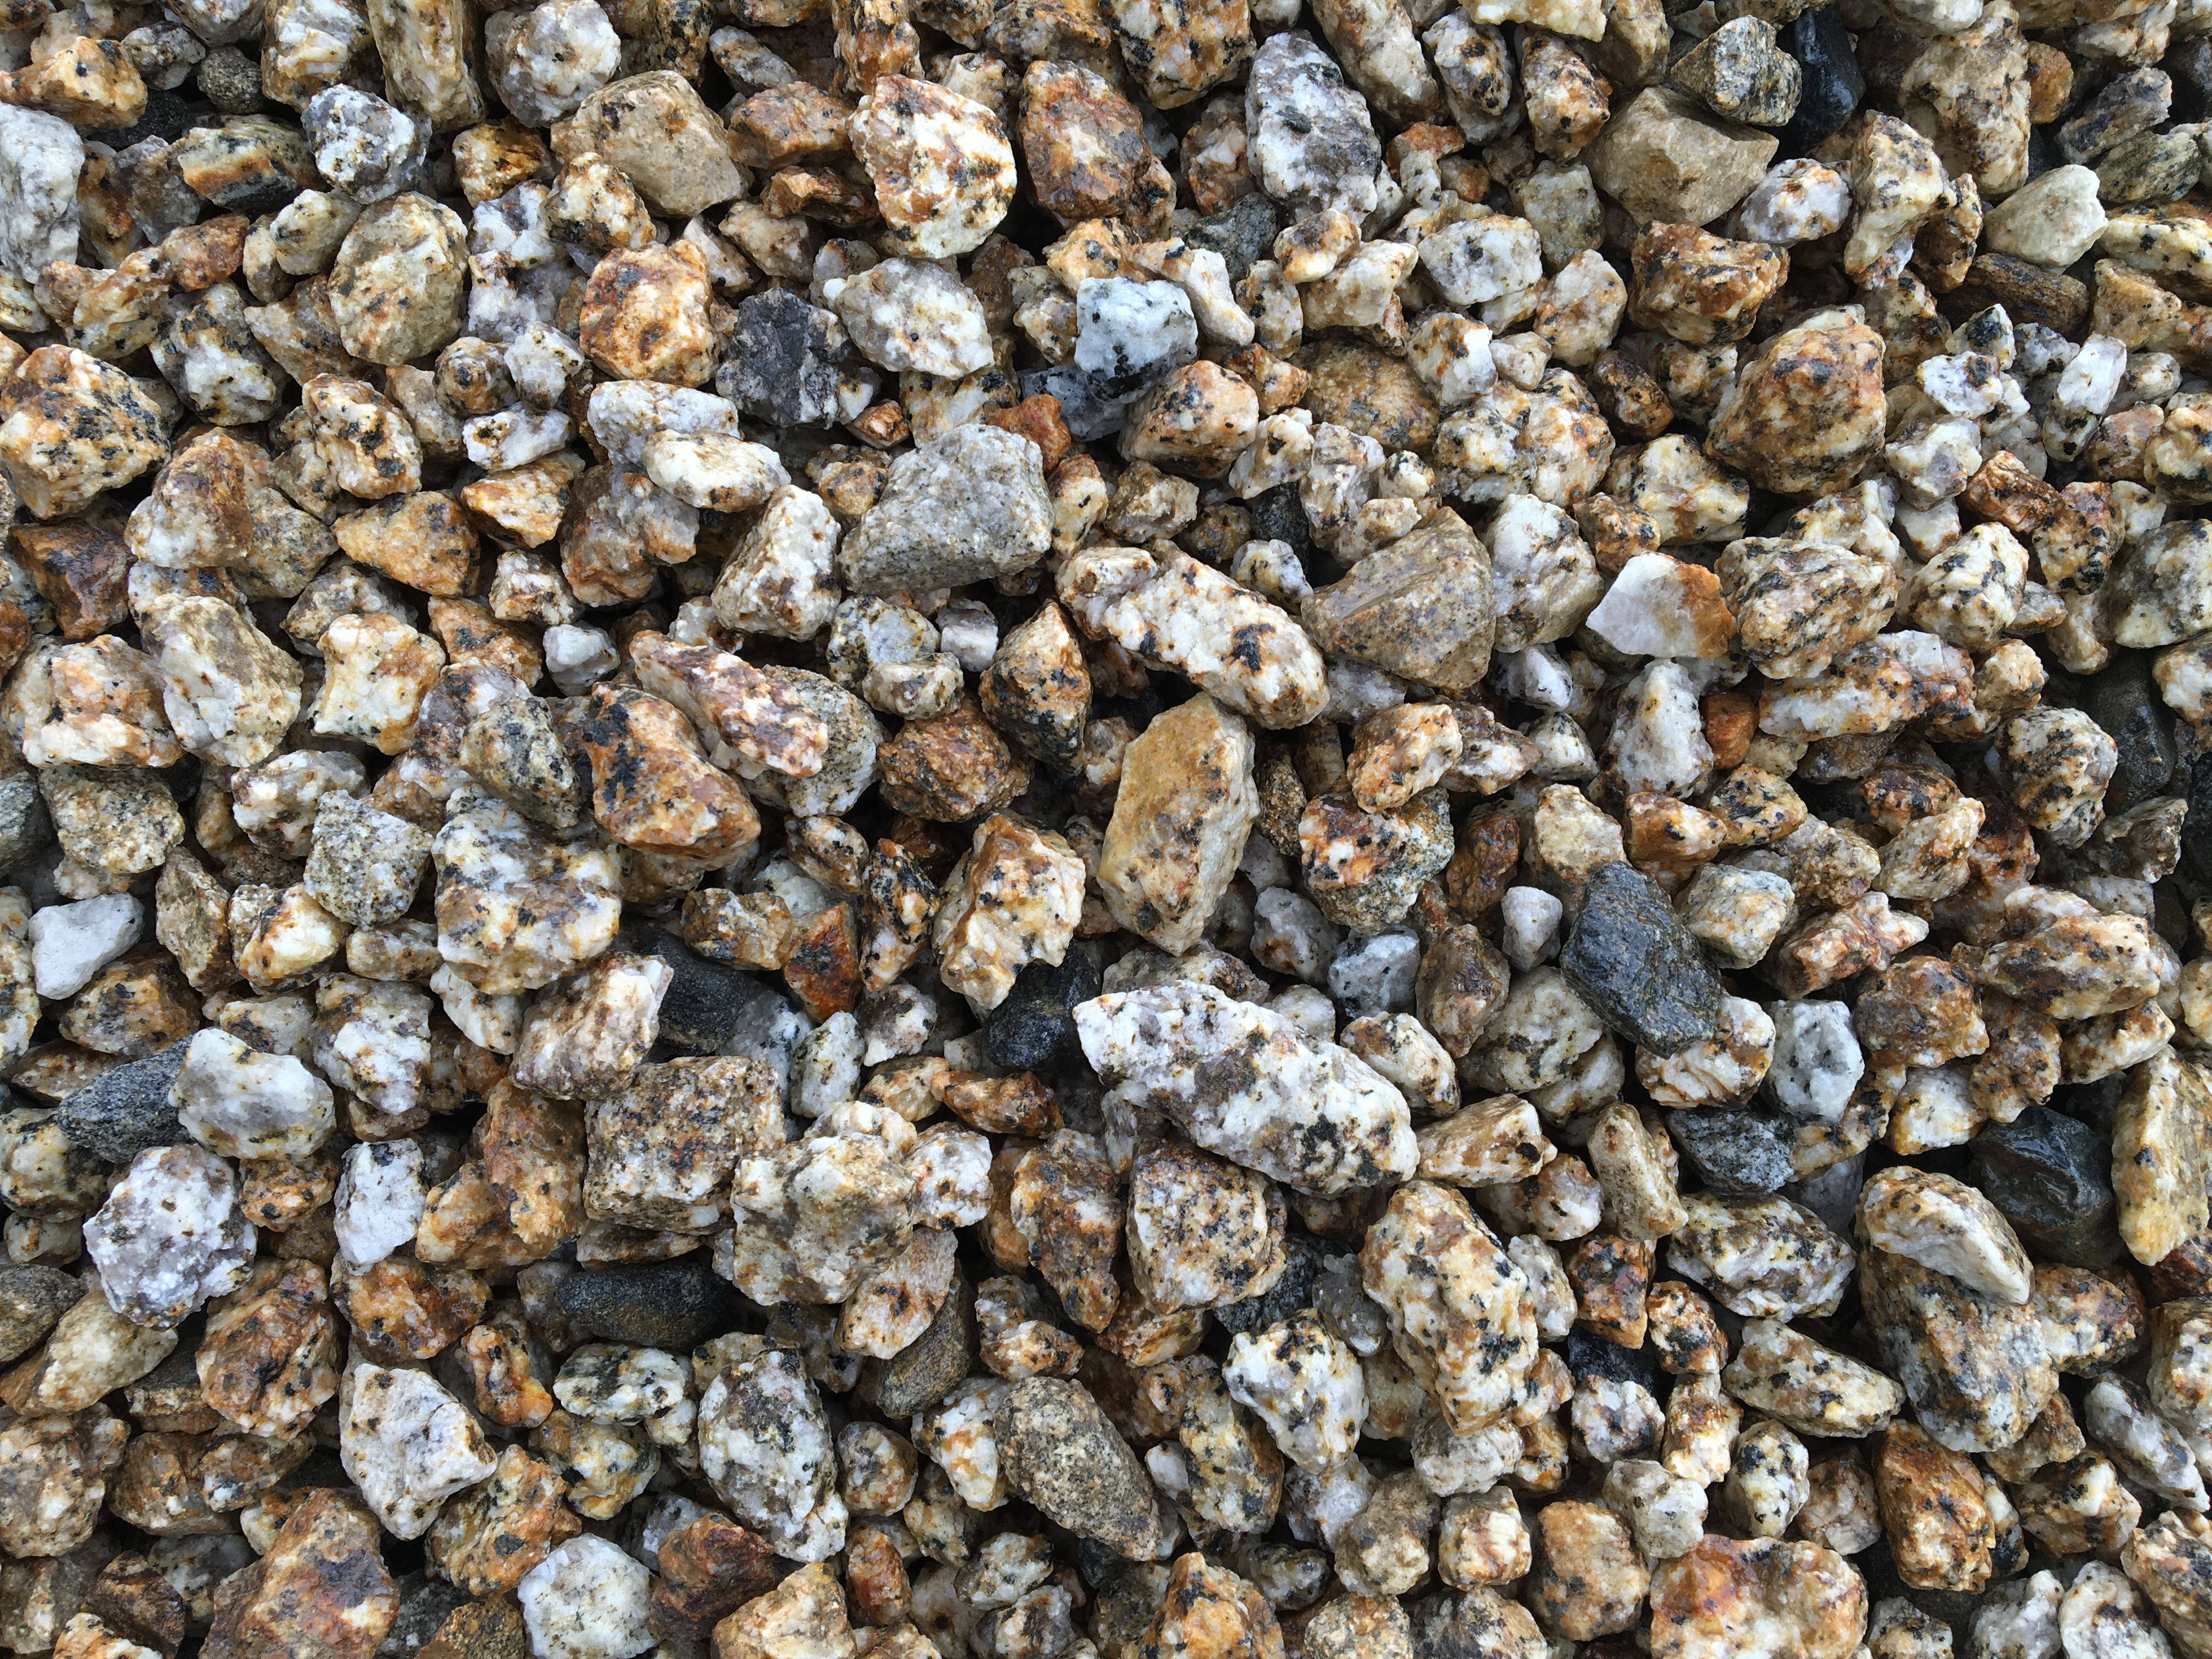 scale rounded gravel seen dry cotswold pin provided decorative with as decor